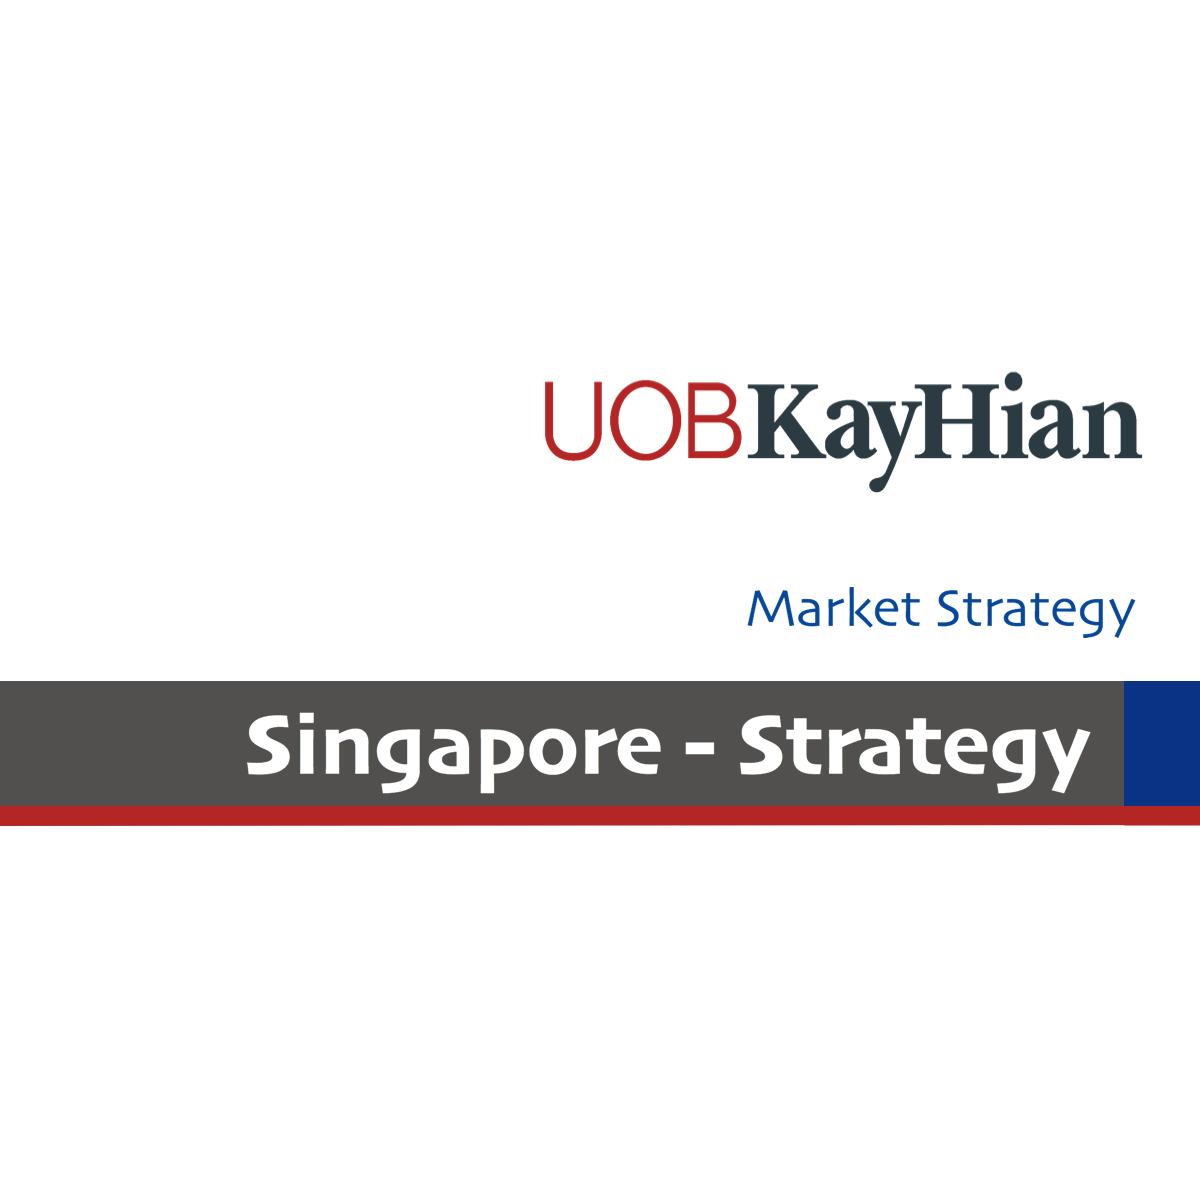 Singapore Strategy 2Q17 Report Card - UOB Kay Hian 2017-08-17: Pockets Of Solid Outperformances